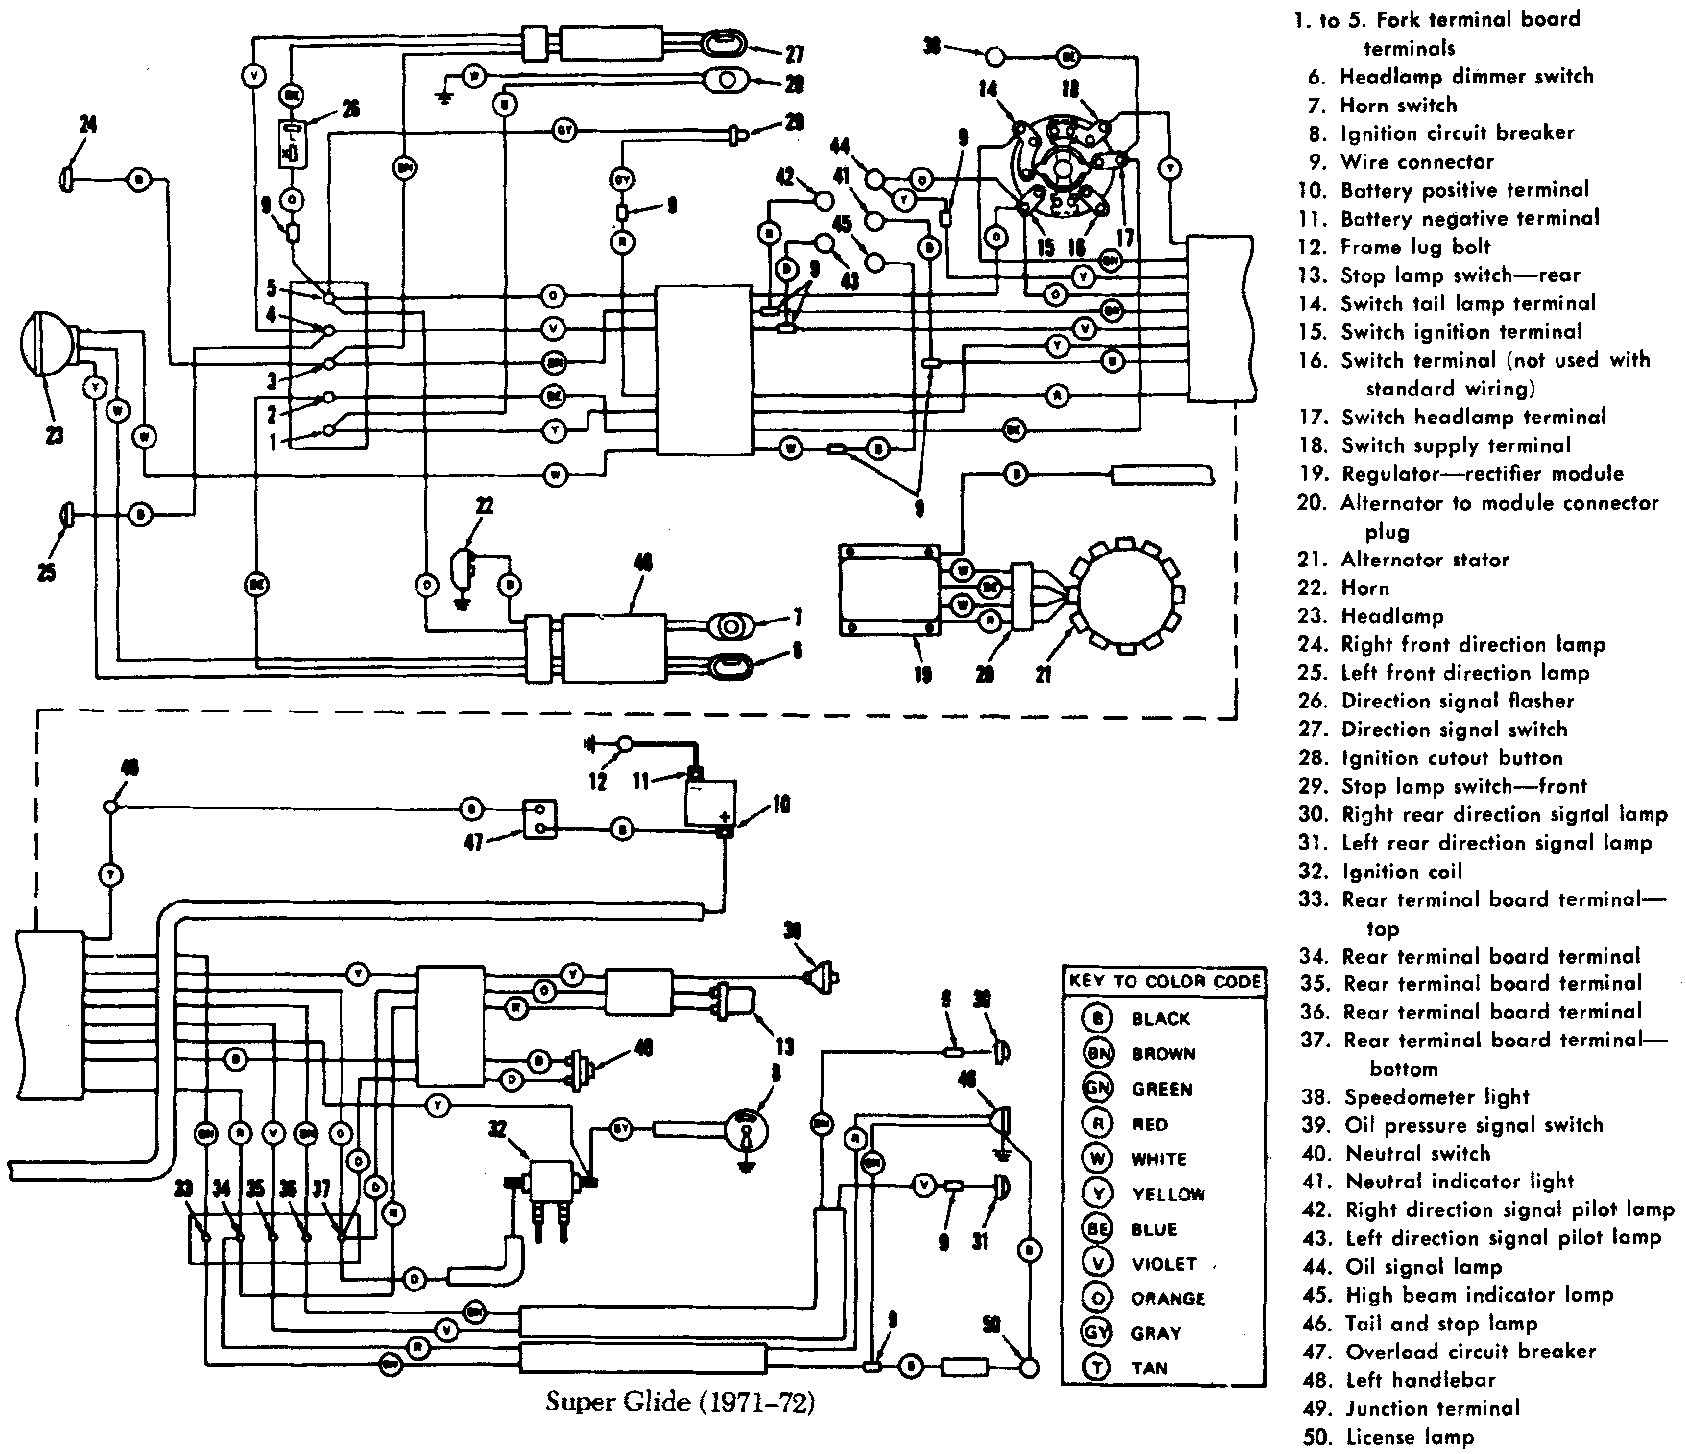 Harley Davidson Ignition Switch Wiring Diagram on momentary switch wiring diagram, sportster dyna 2000 ignition wiring diagram, coil wiring diagram,